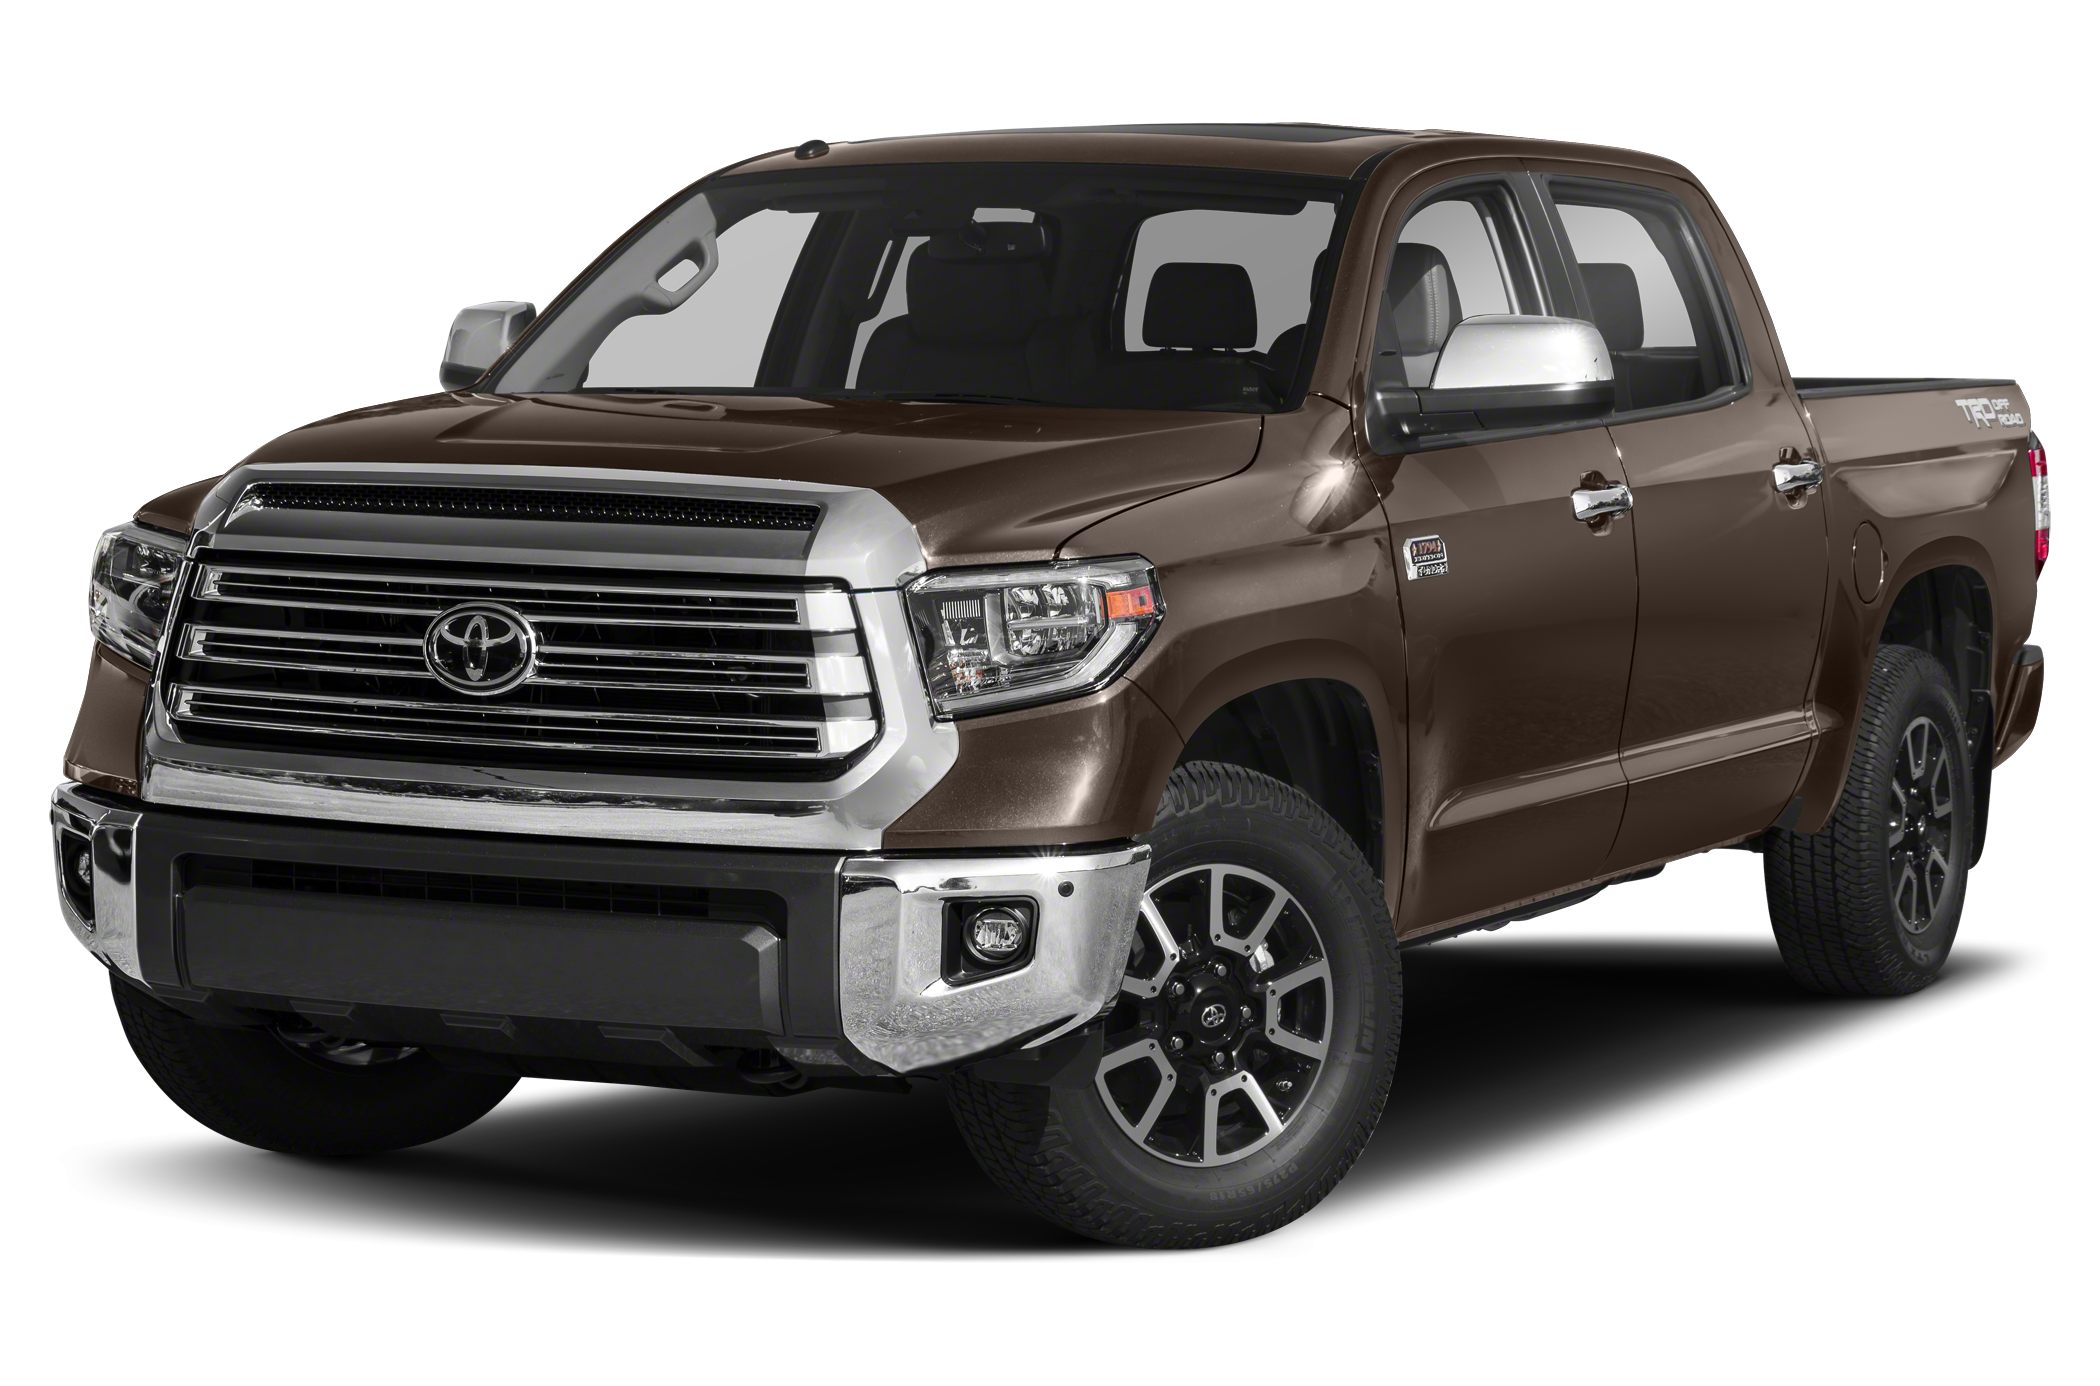 2018 toyota tundra 1794 for sale vin 5tfay5f15jx